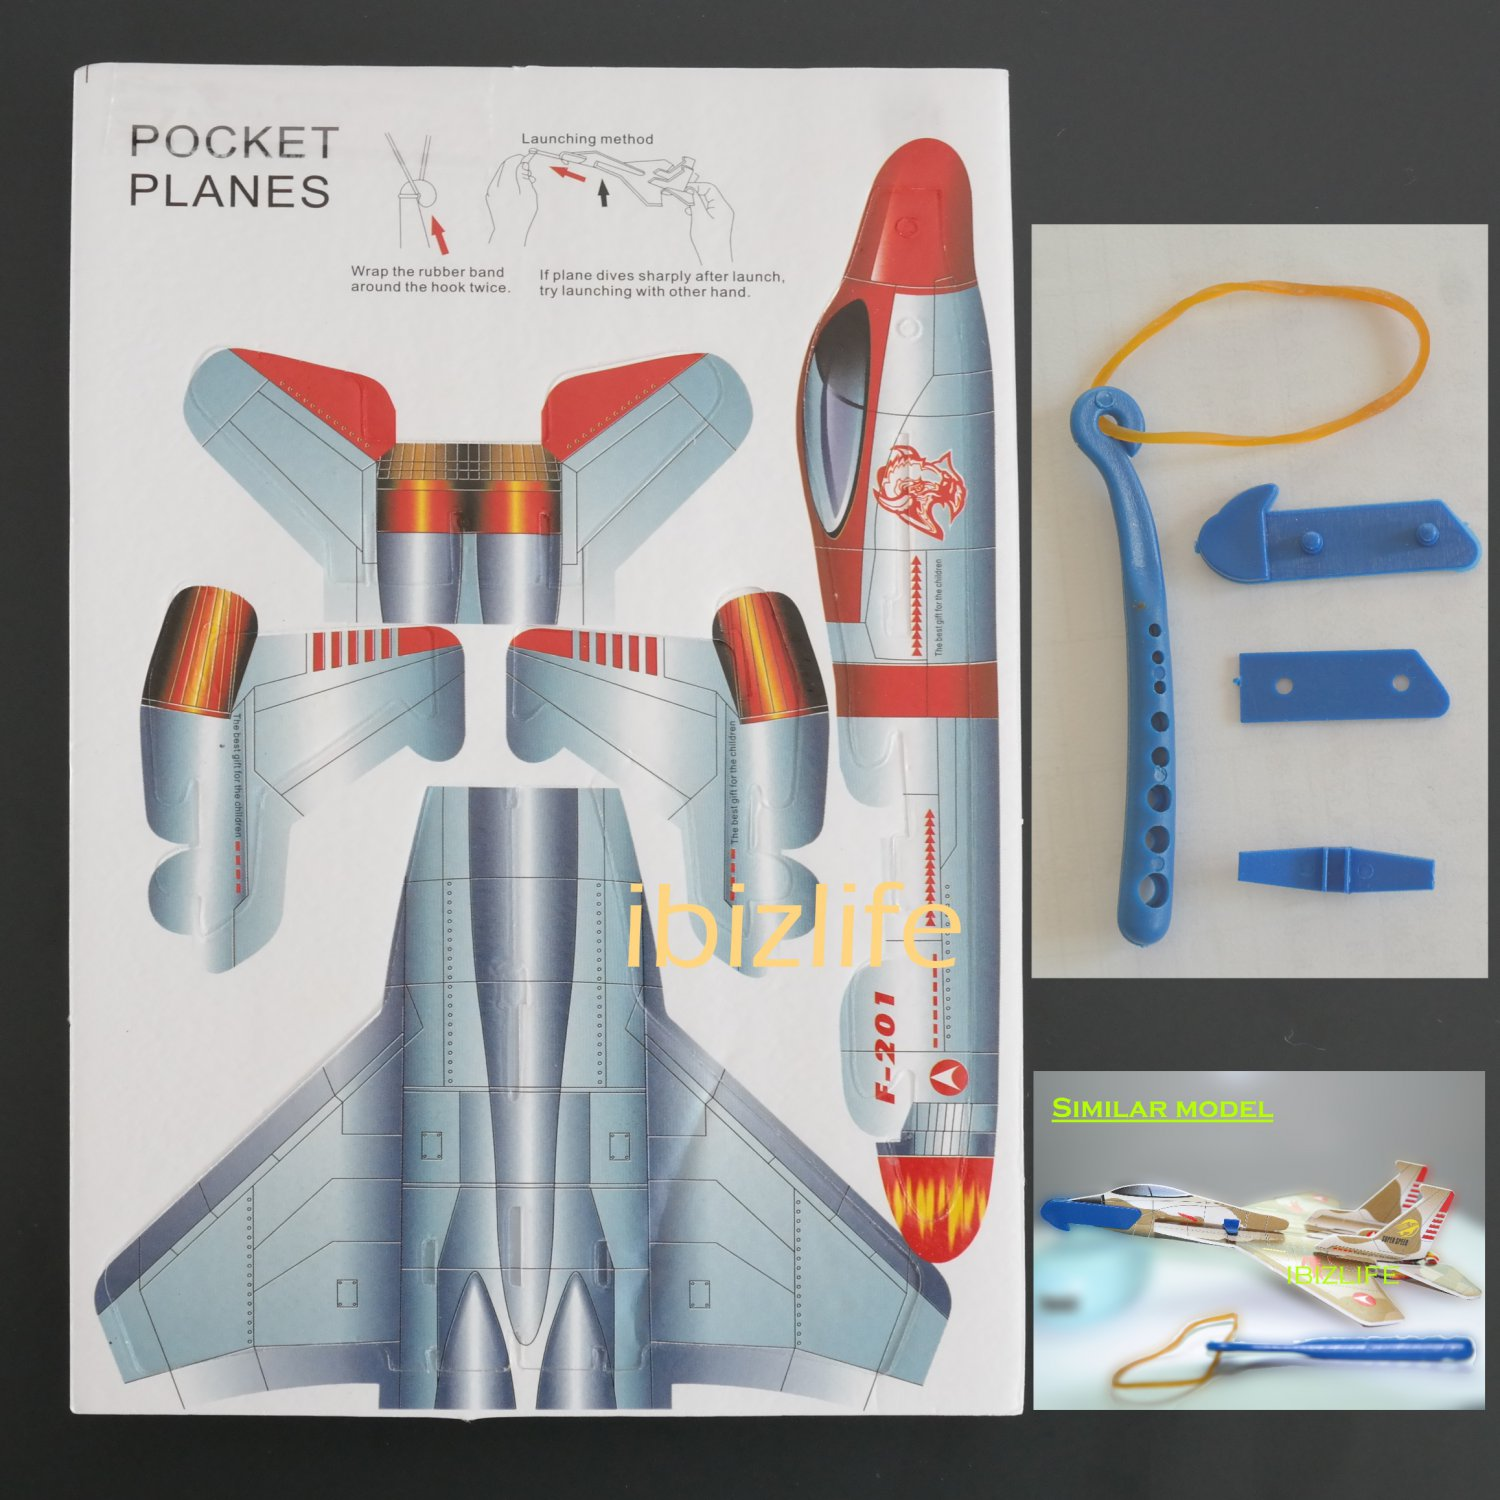 3D DIY Paper model flying pocket planes as gift for children and kids F-201   (pc37)